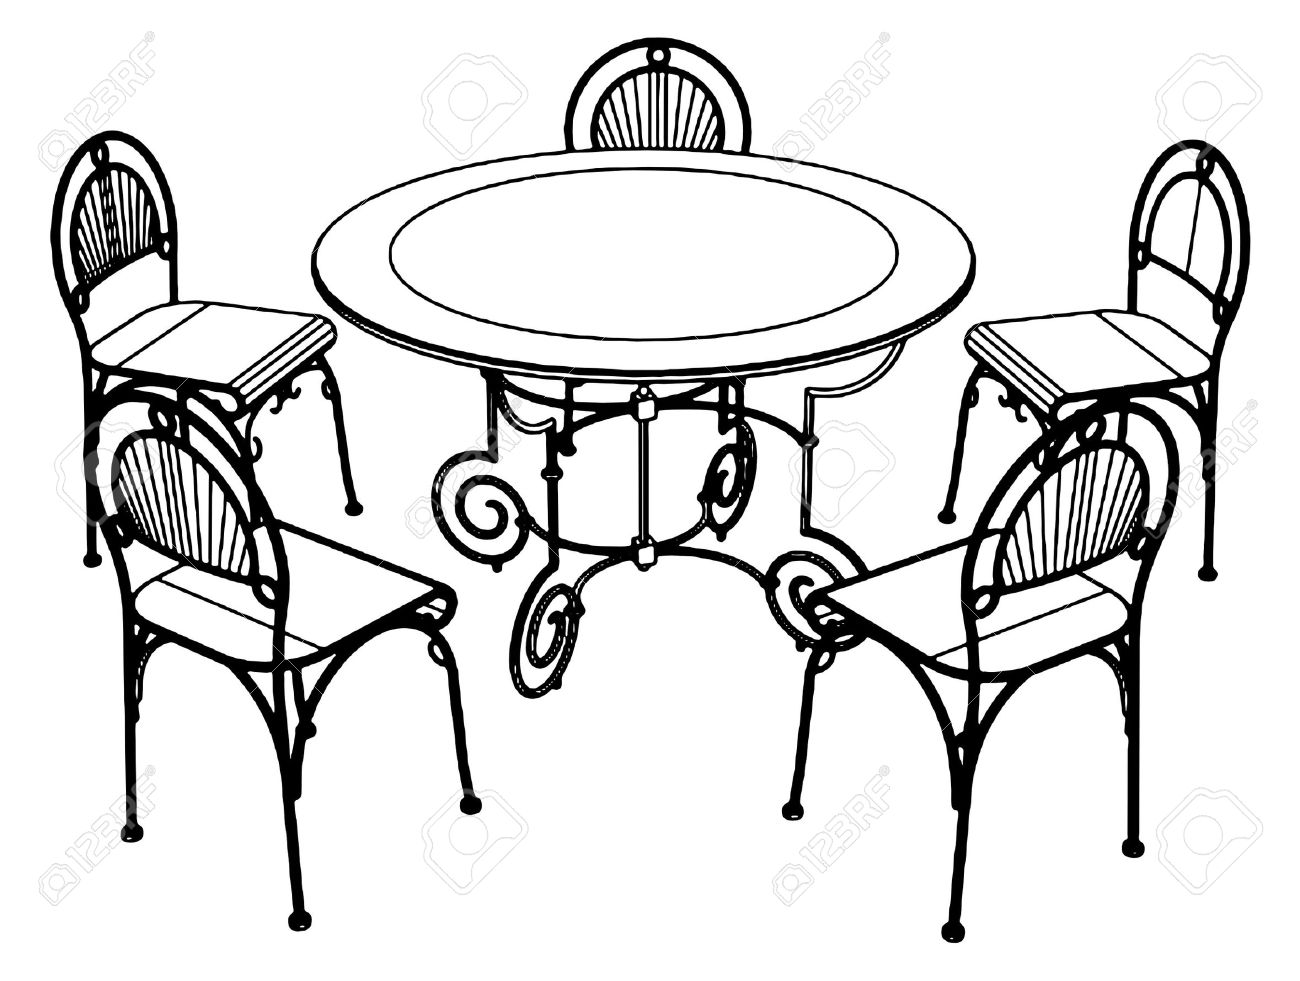 1300x981 Furniture Delightful Chairs Clipart Black And White Chair Clip